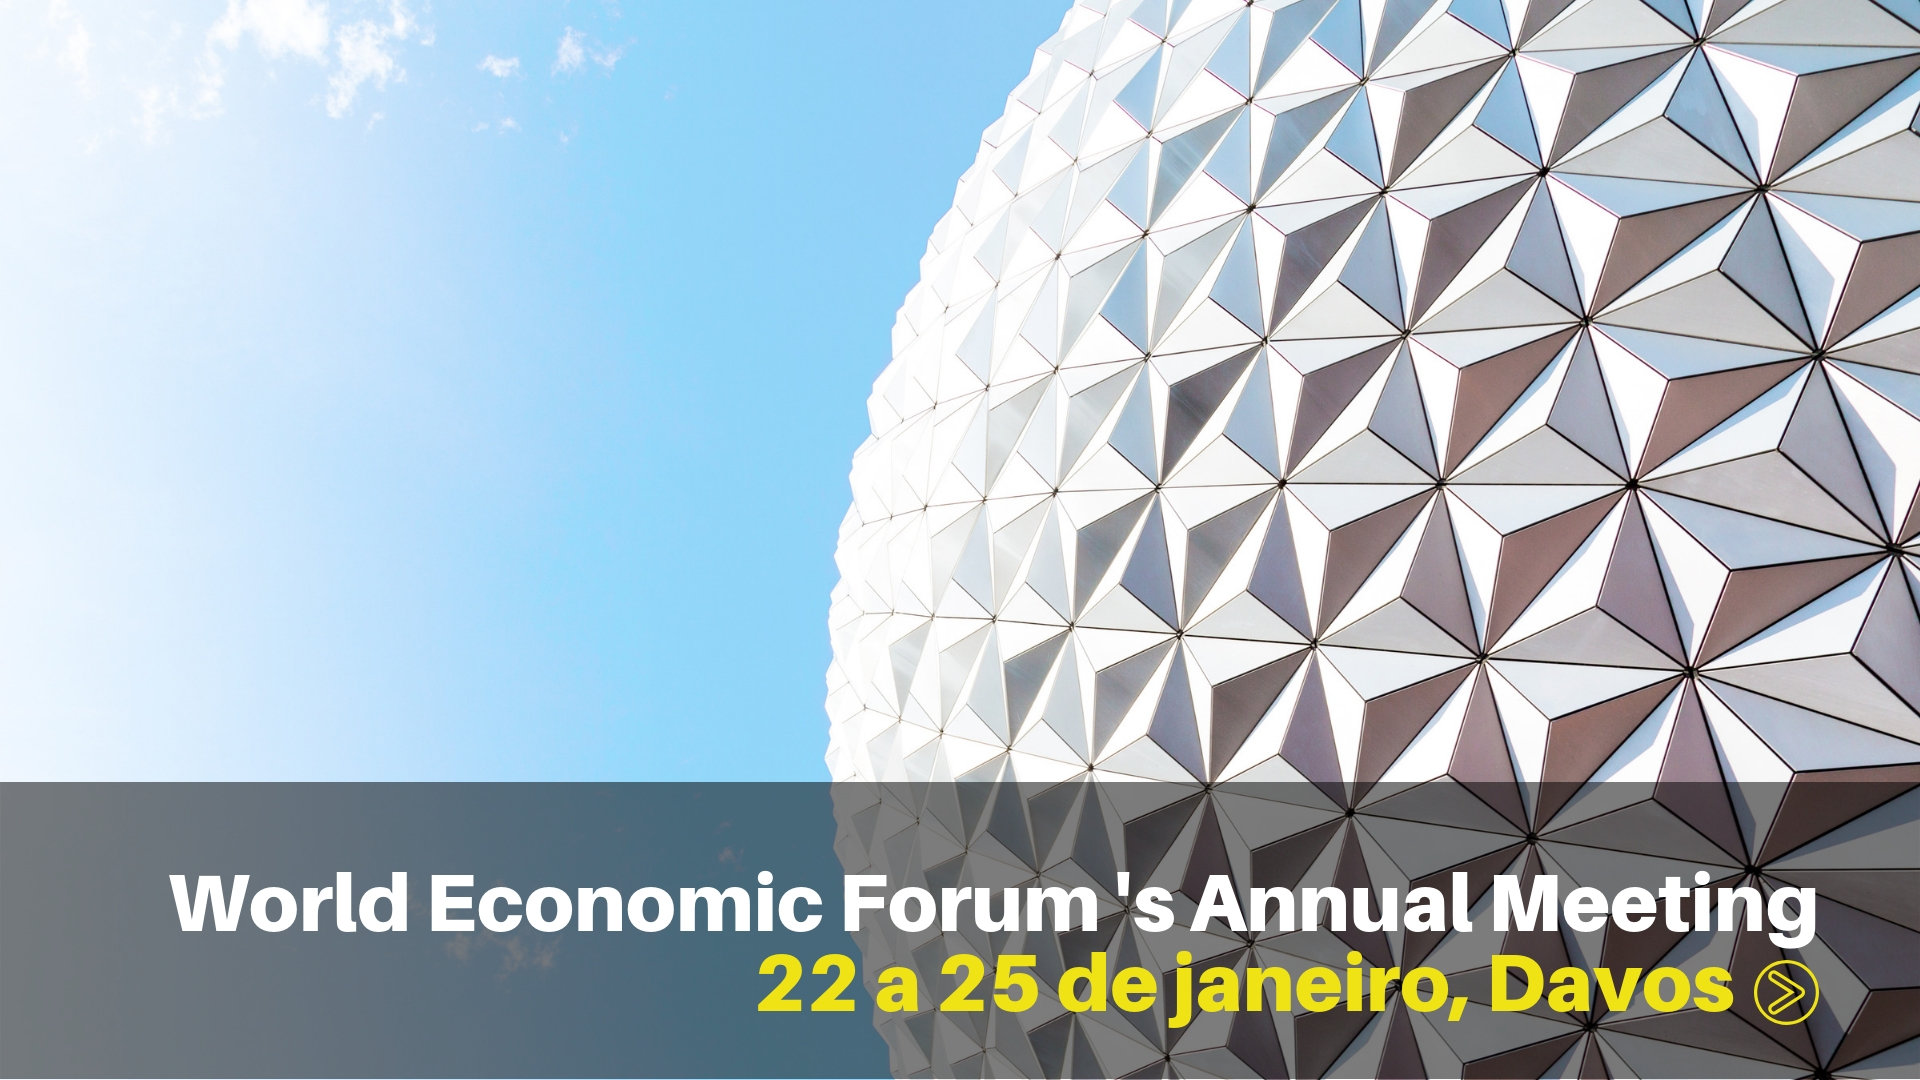 World Economic Forum's Annual Meeting